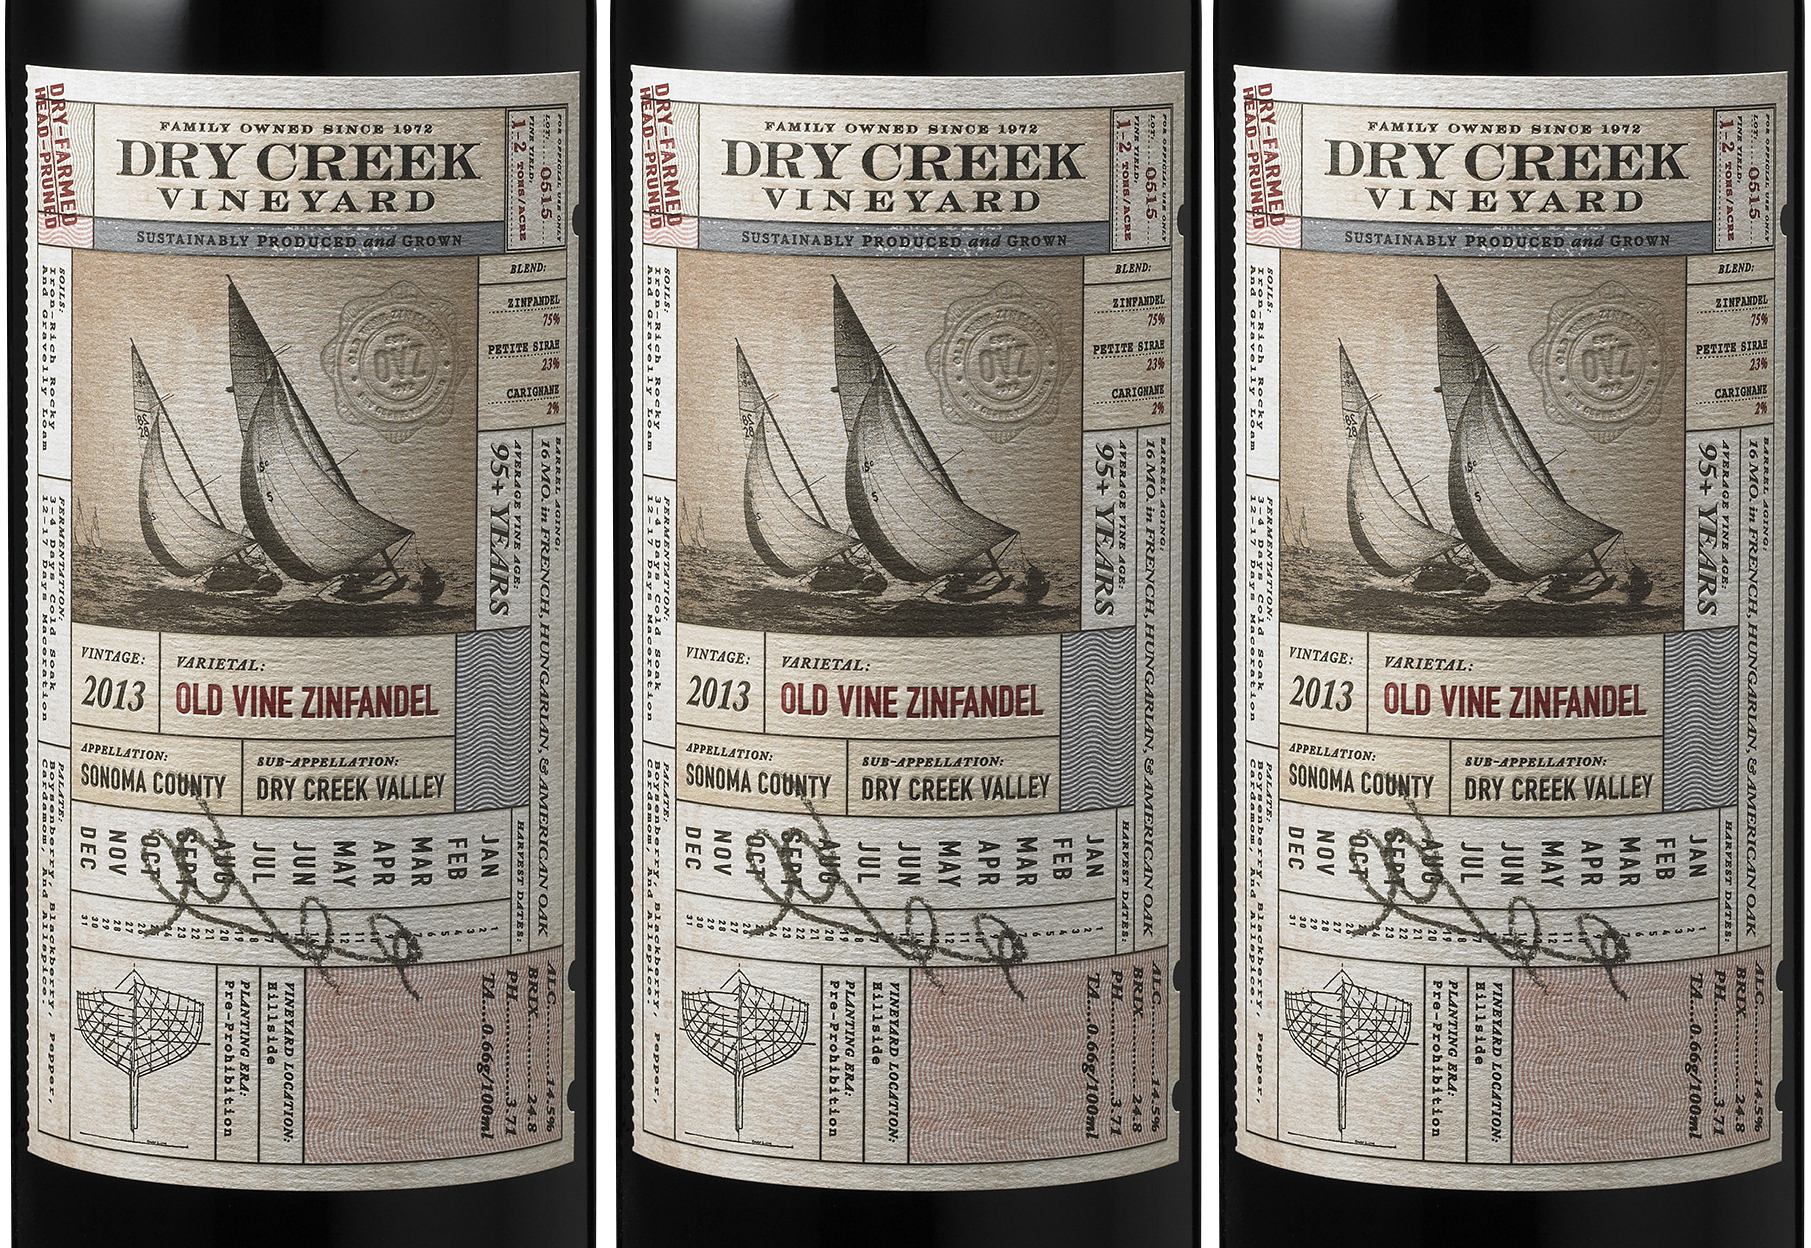 Auston Design Group - Dry Creek Vineyard - Old Vine Zin - 3 Bottle Close-up